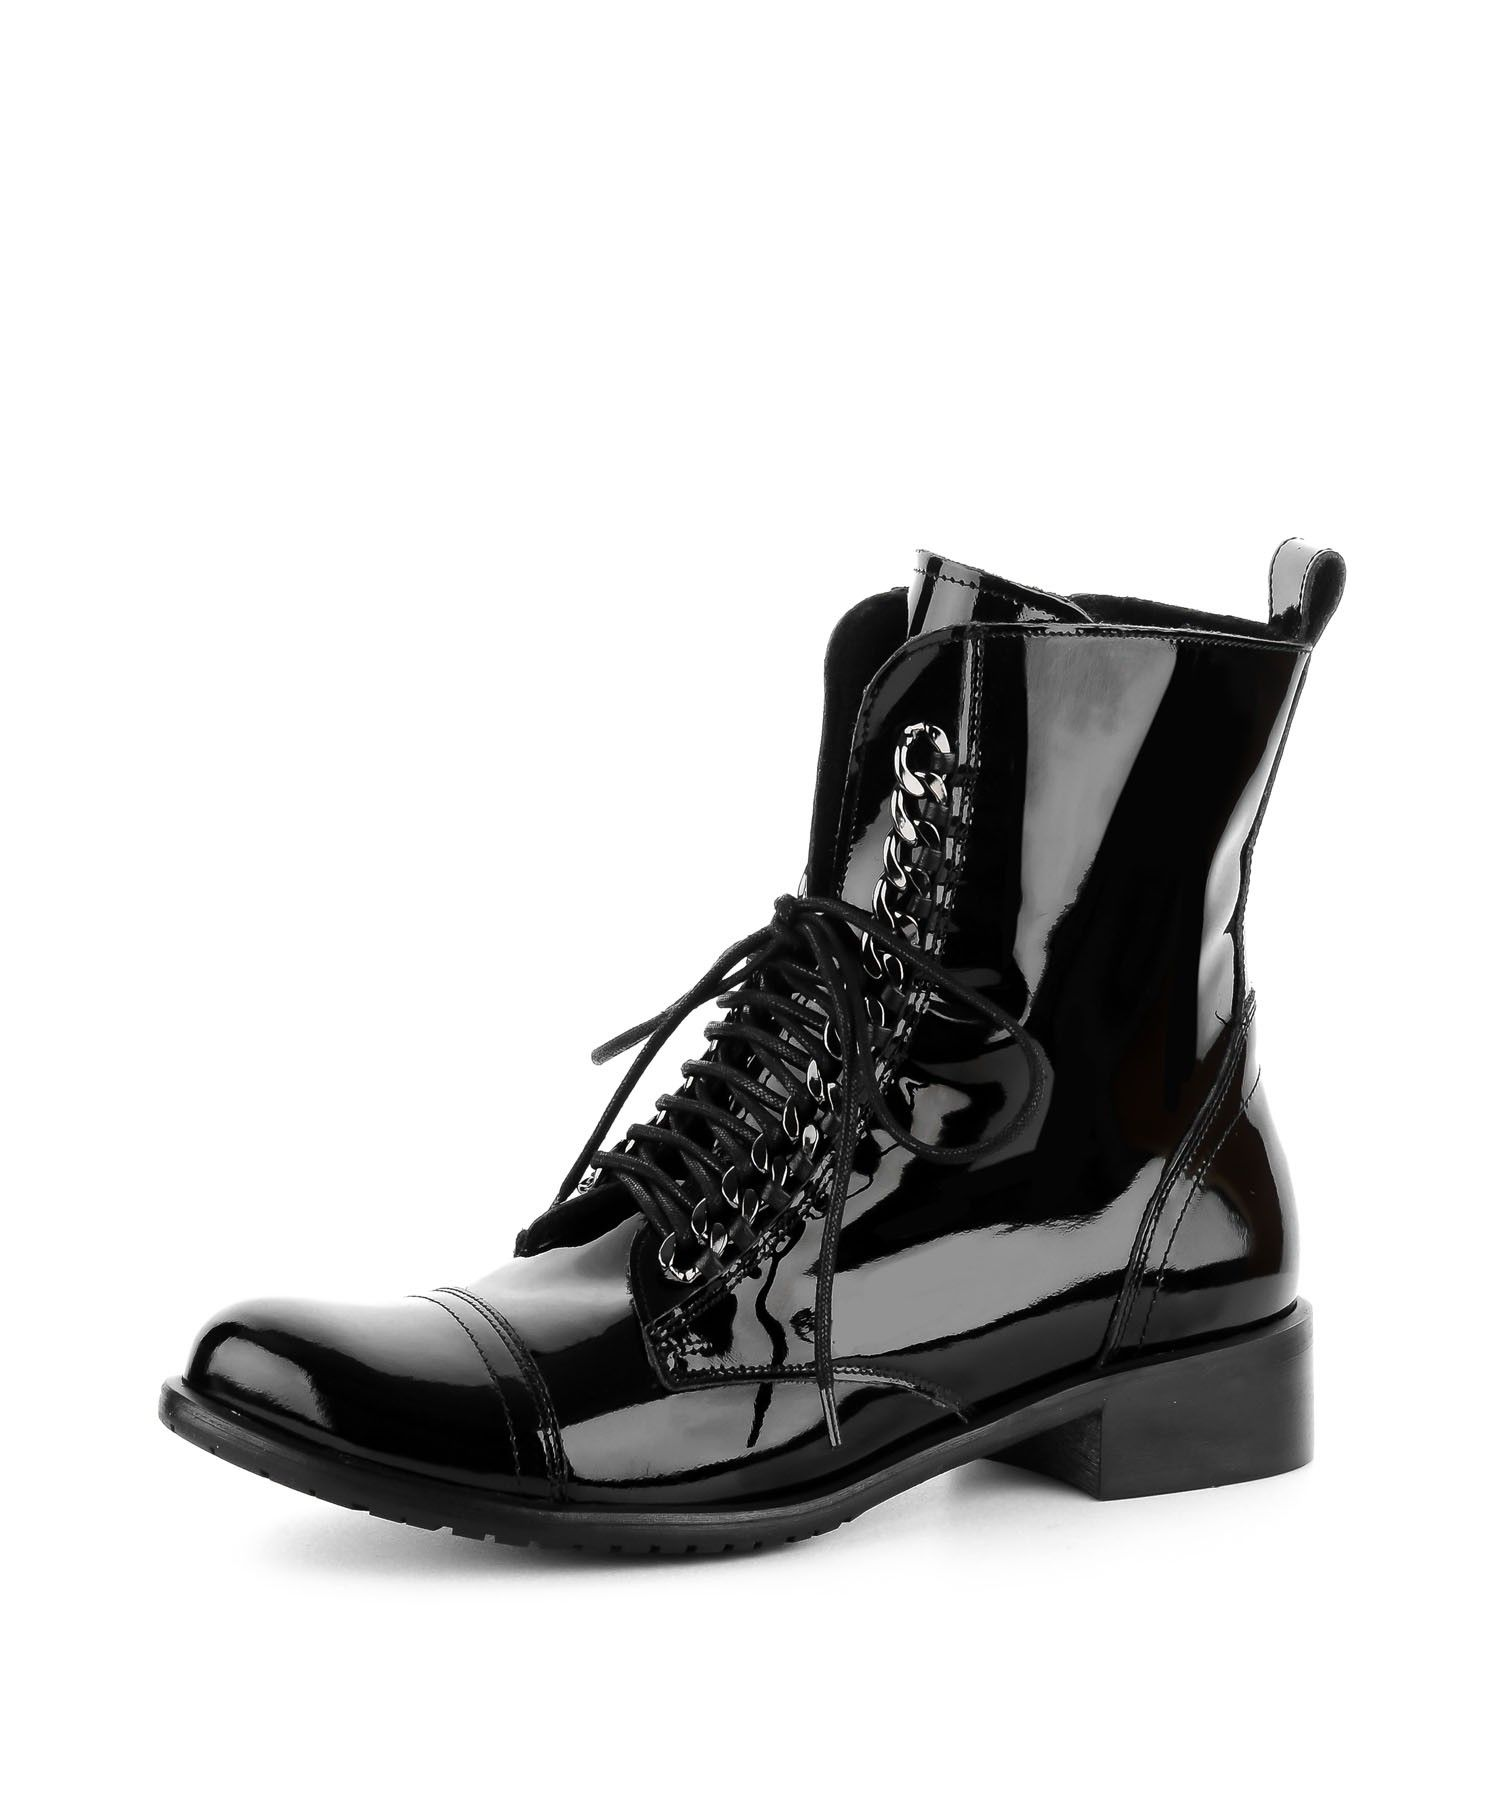 Kobieta Rylko Producent Obuwia Shoes Ankle Boot Boots